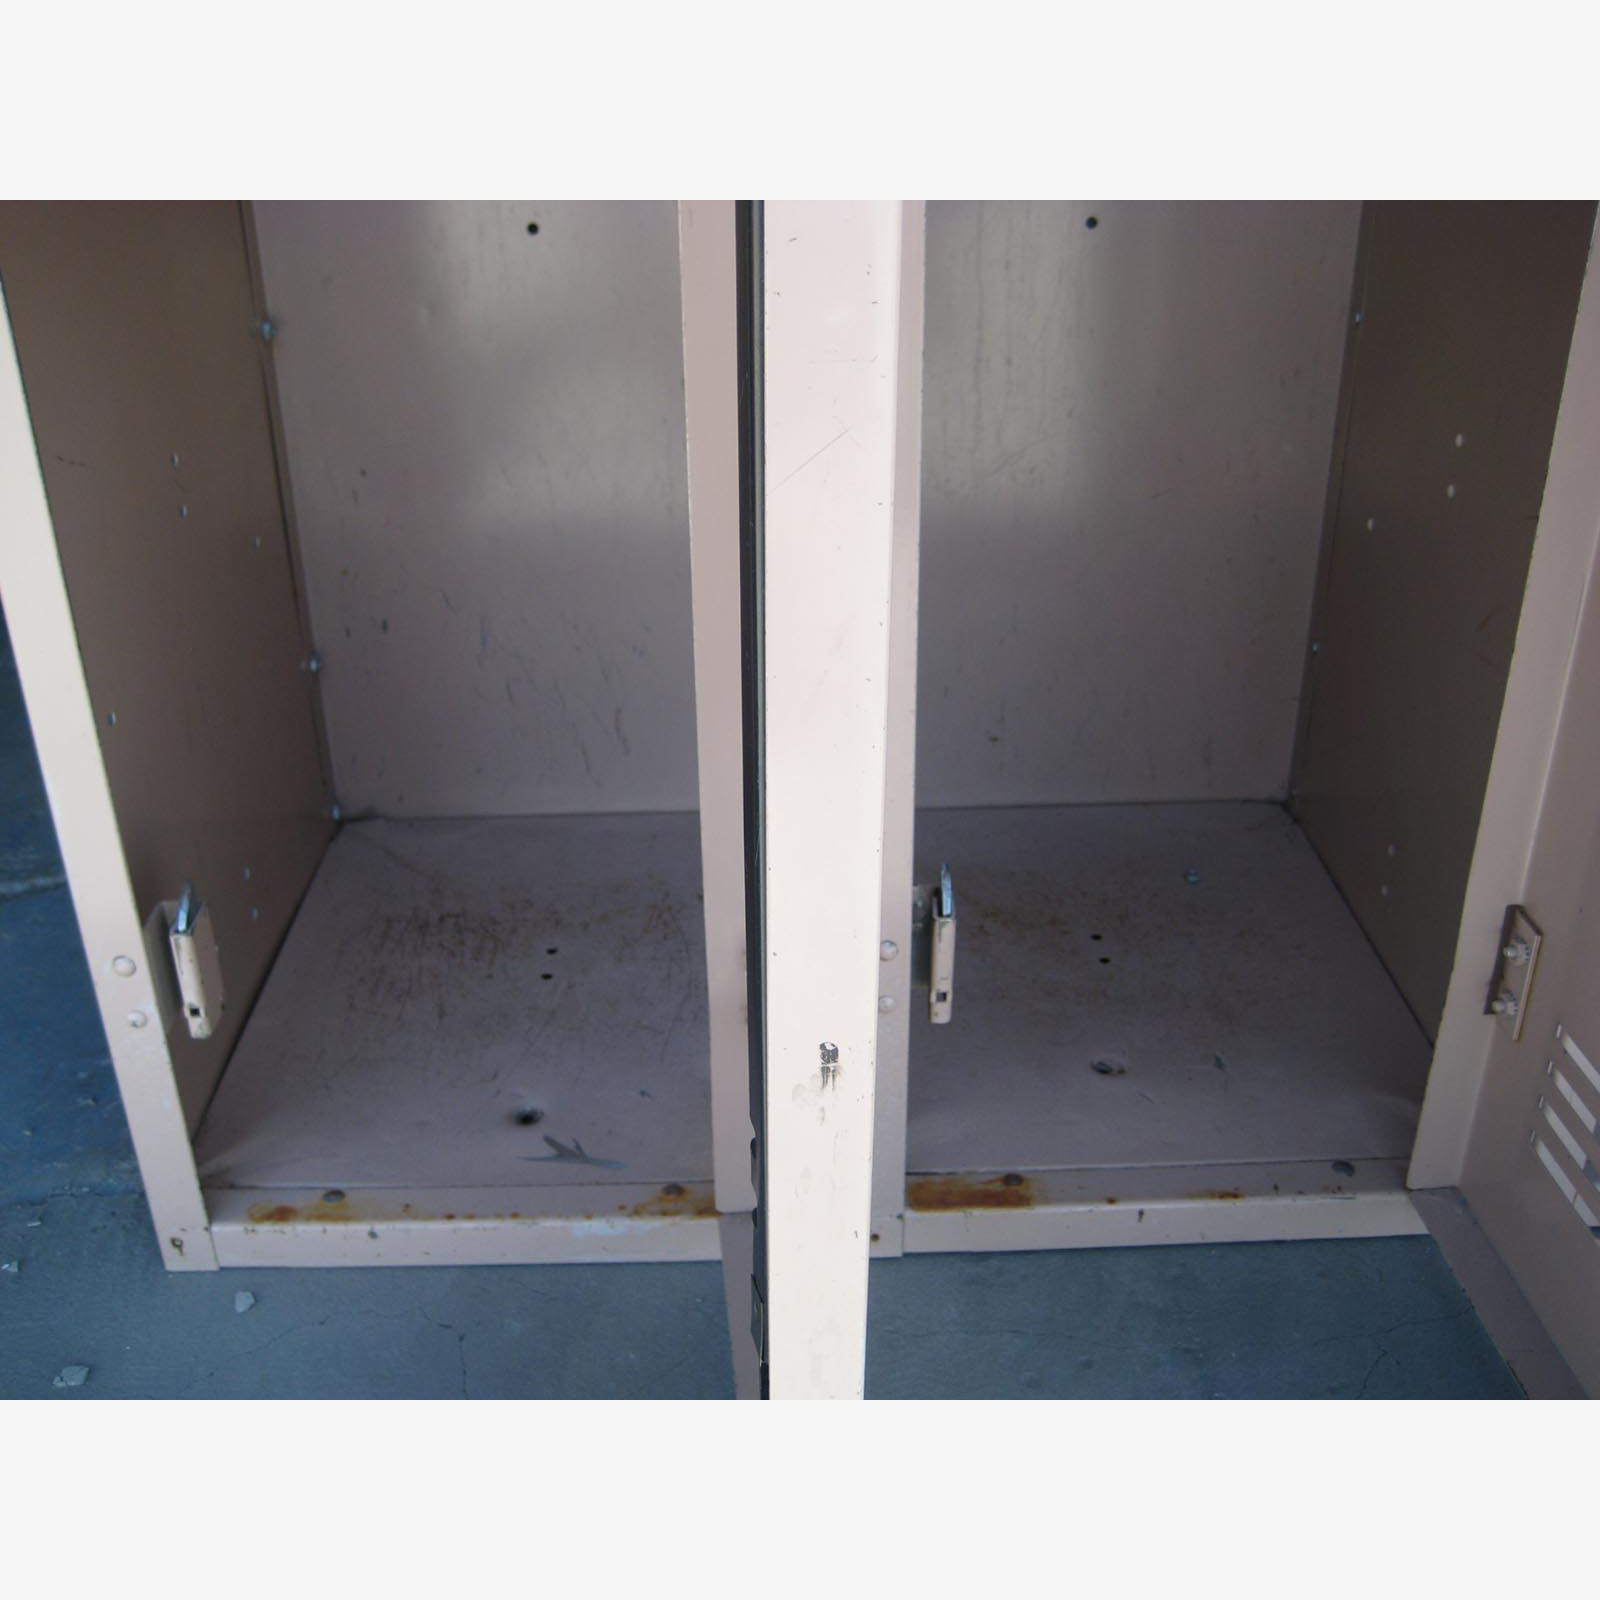 Single Tier Metal Storage Lockersimage 4 image 4